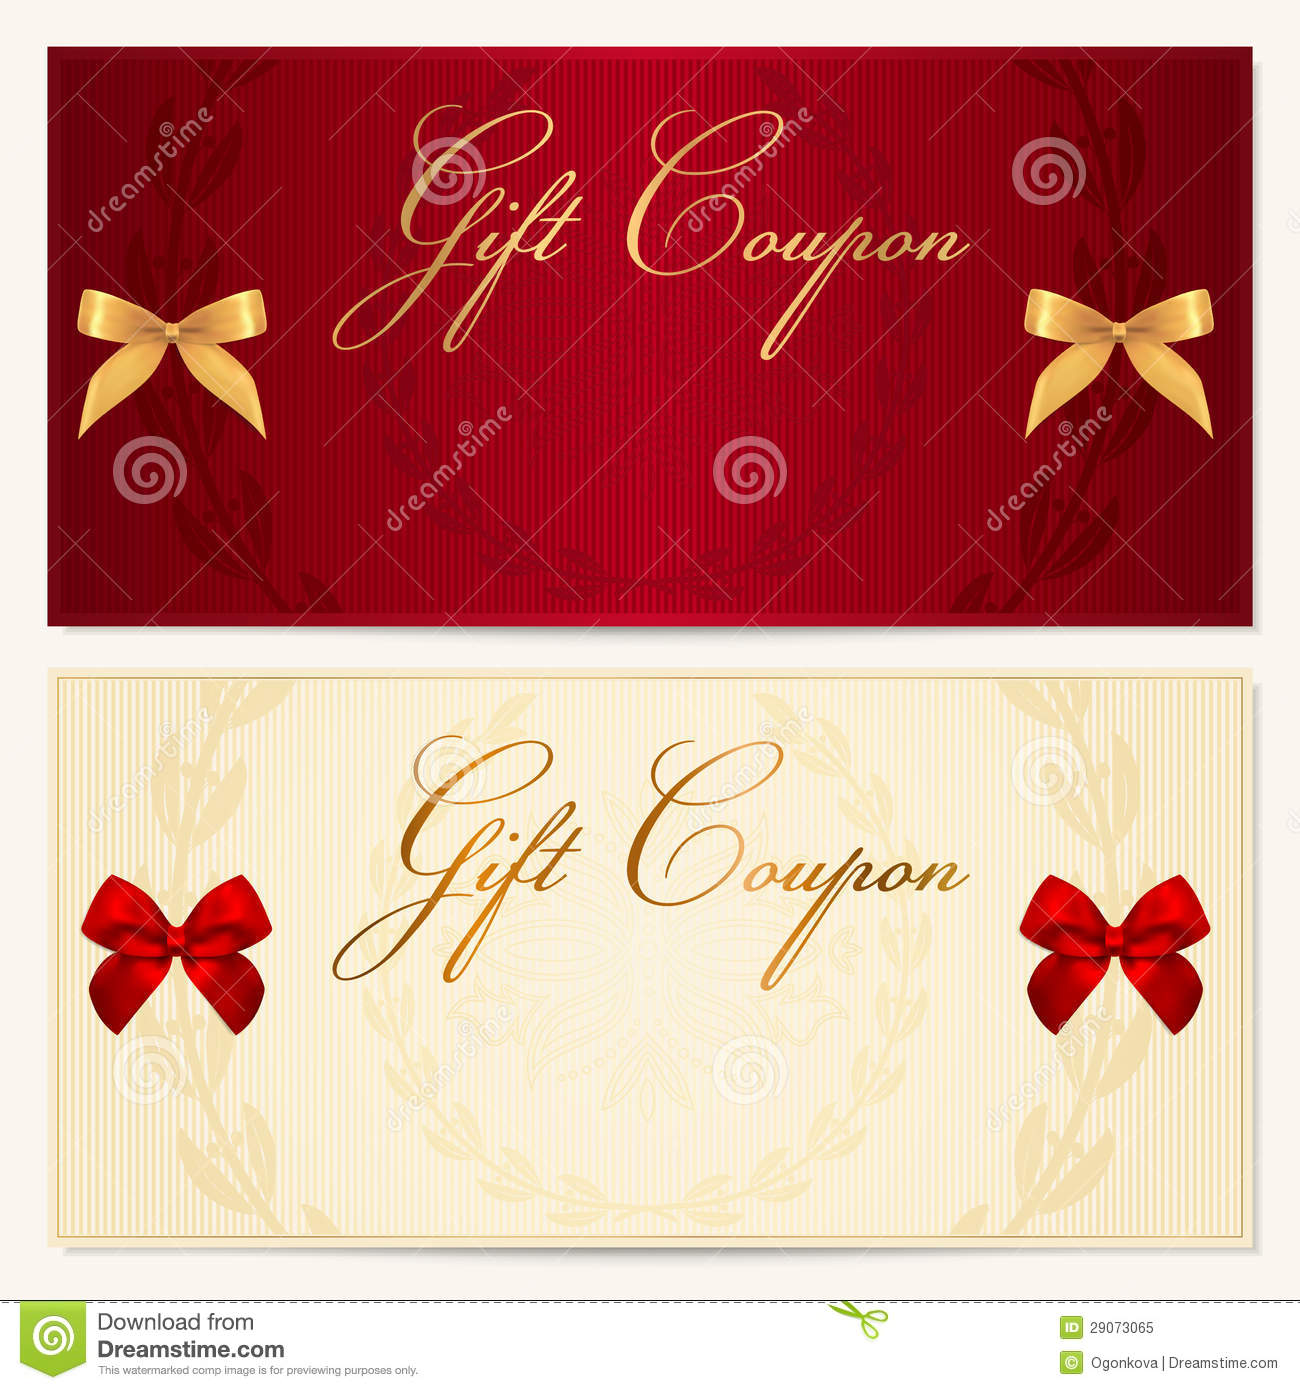 Gift voucher coupon template bow ribbons stock vector gift voucher coupon template bow ribbons yelopaper